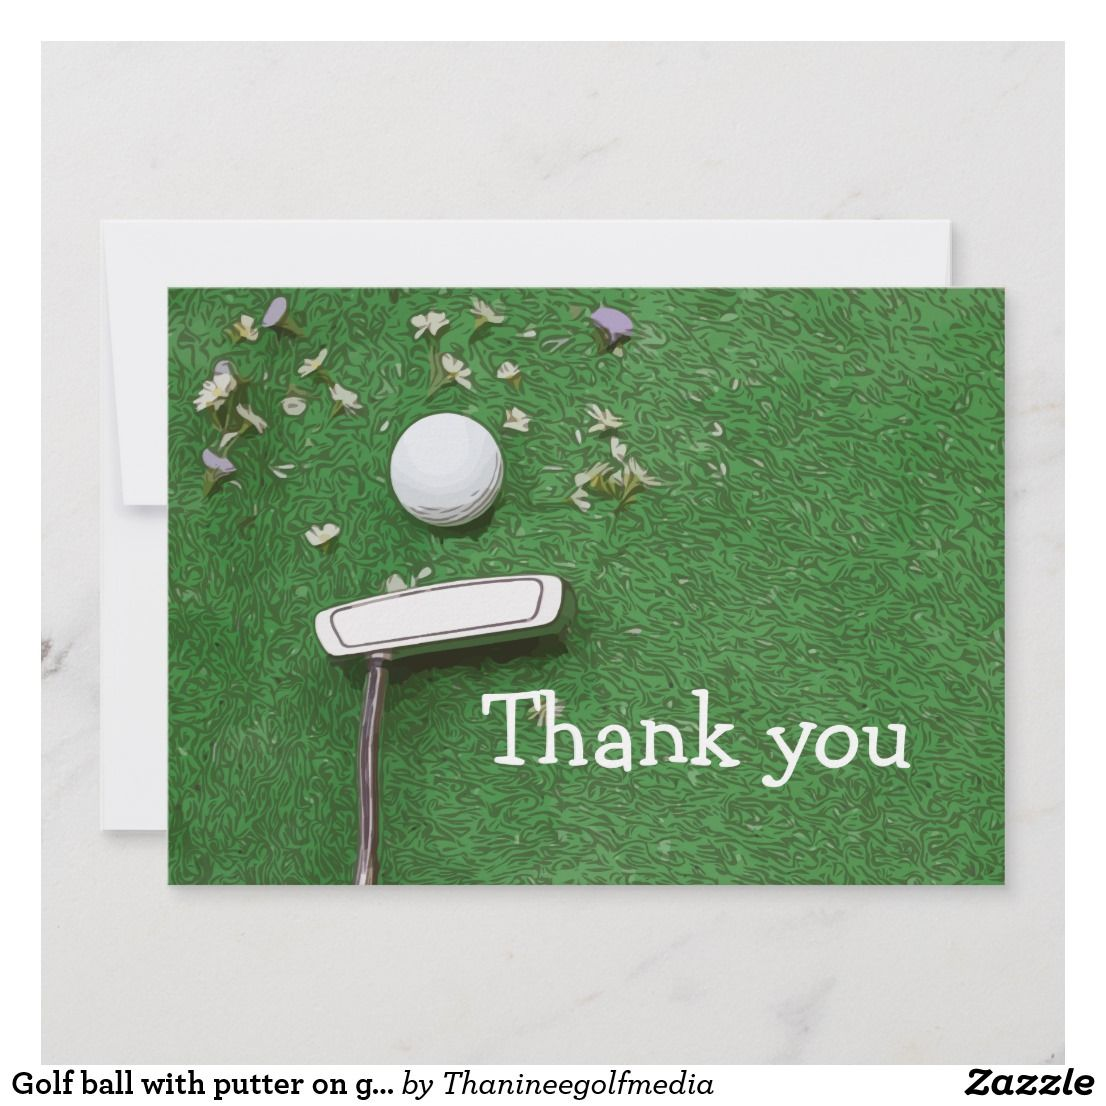 Golf Ball With Putter On Green Grass Thank You Card Golf Birthday Cards Thank You Cards Cards